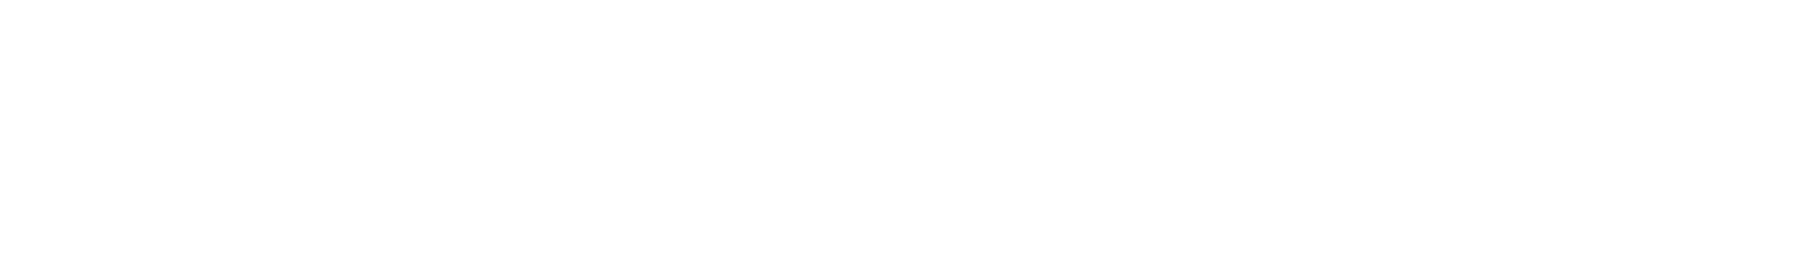 veh1 cutted sounds   108